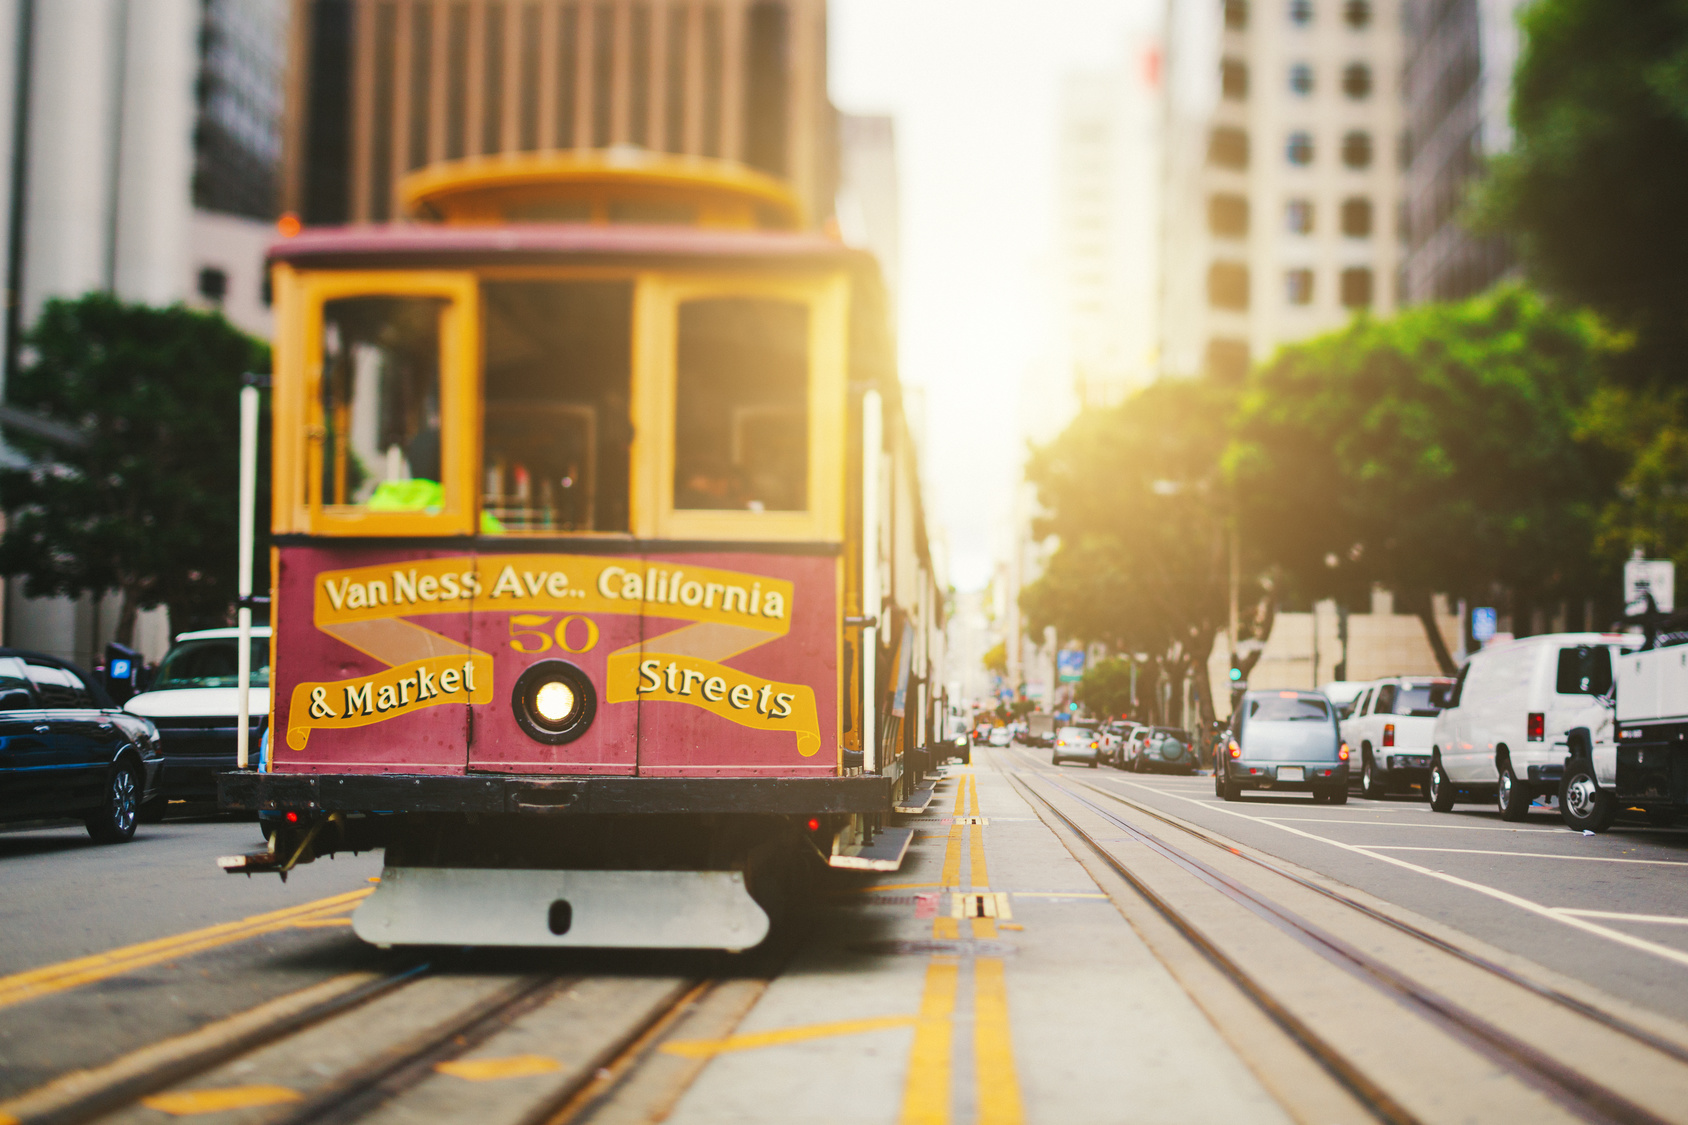 San Francisco Cable Car in California Street